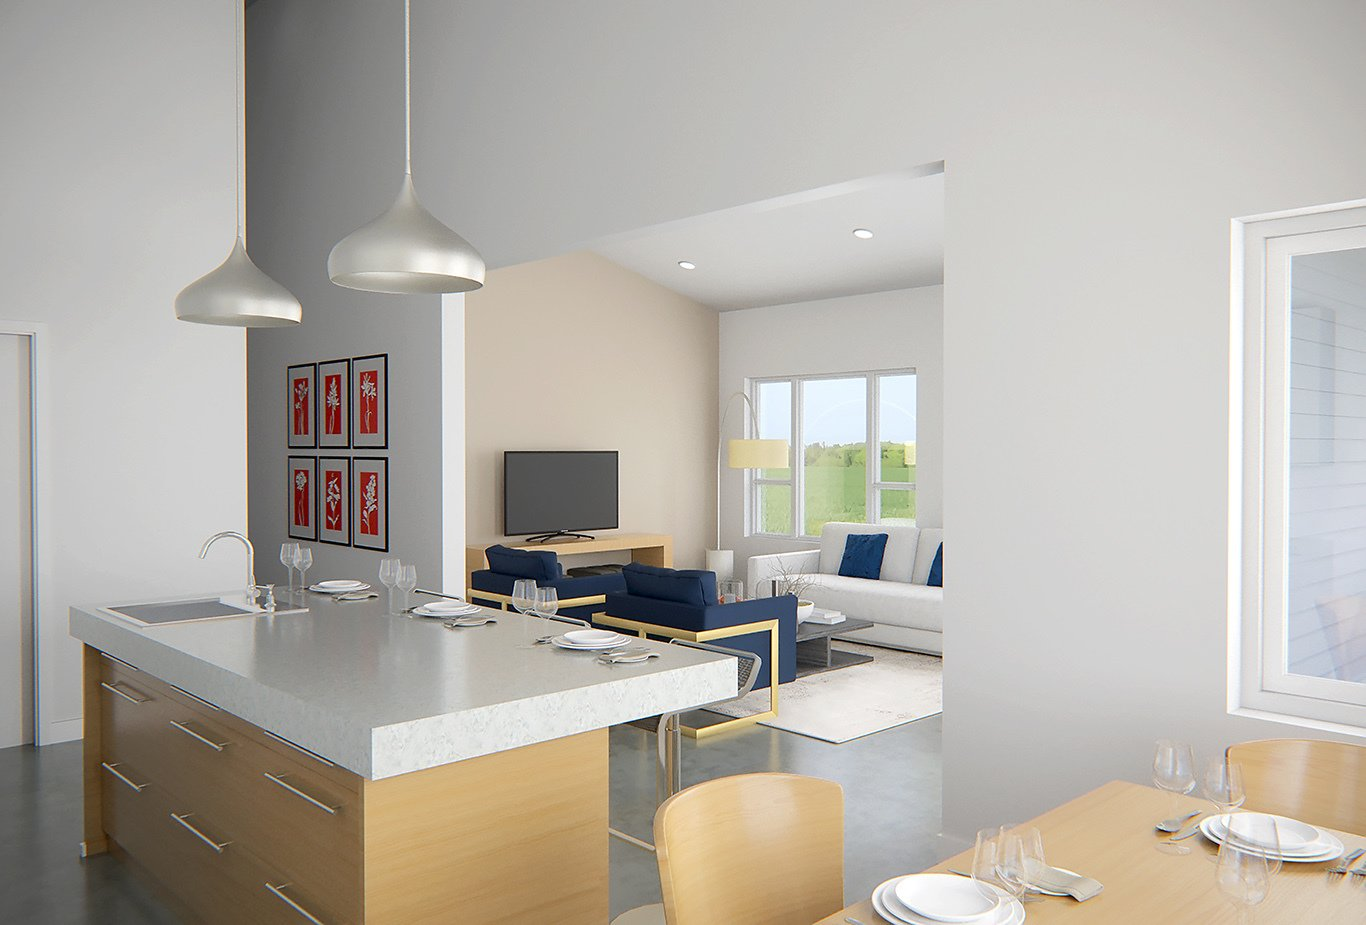 Ridgeline E Interior  Photo 3 of 5 in Deltec Homes Introduces Two New Models, Including Modern Farmhouse